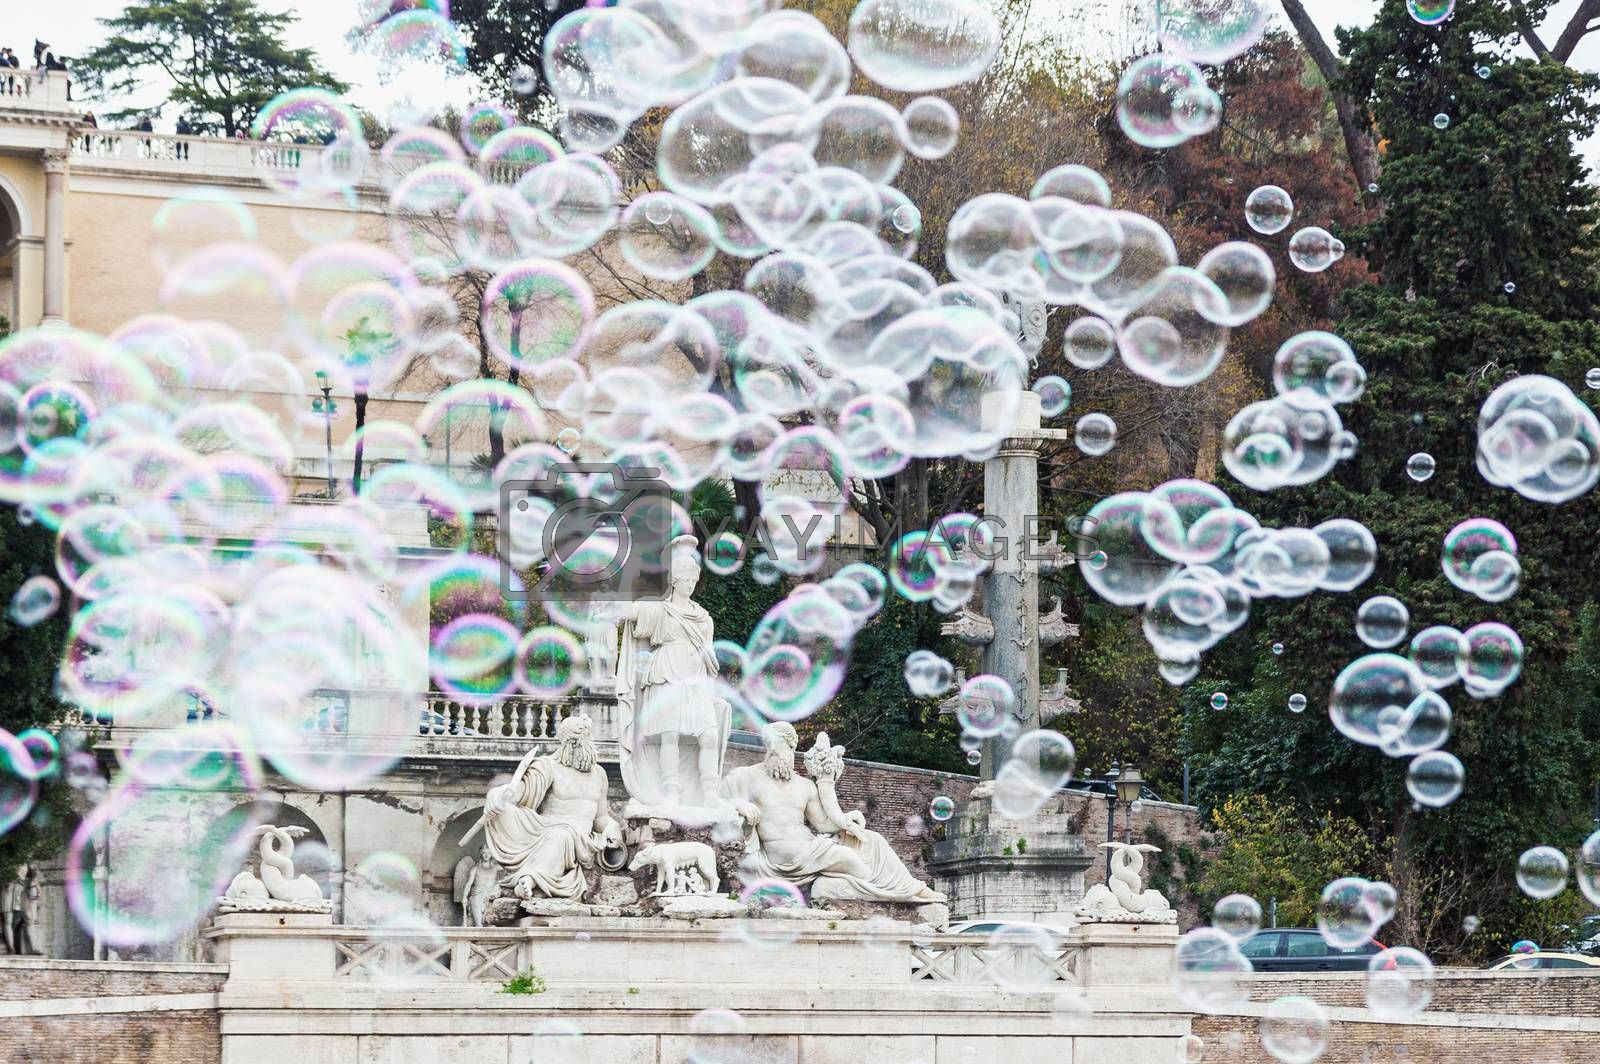 Group of flying soap bubbles covering fountain named Rome between the Tiber and the Aniene in Piazza del Popolo in Rome, Italy